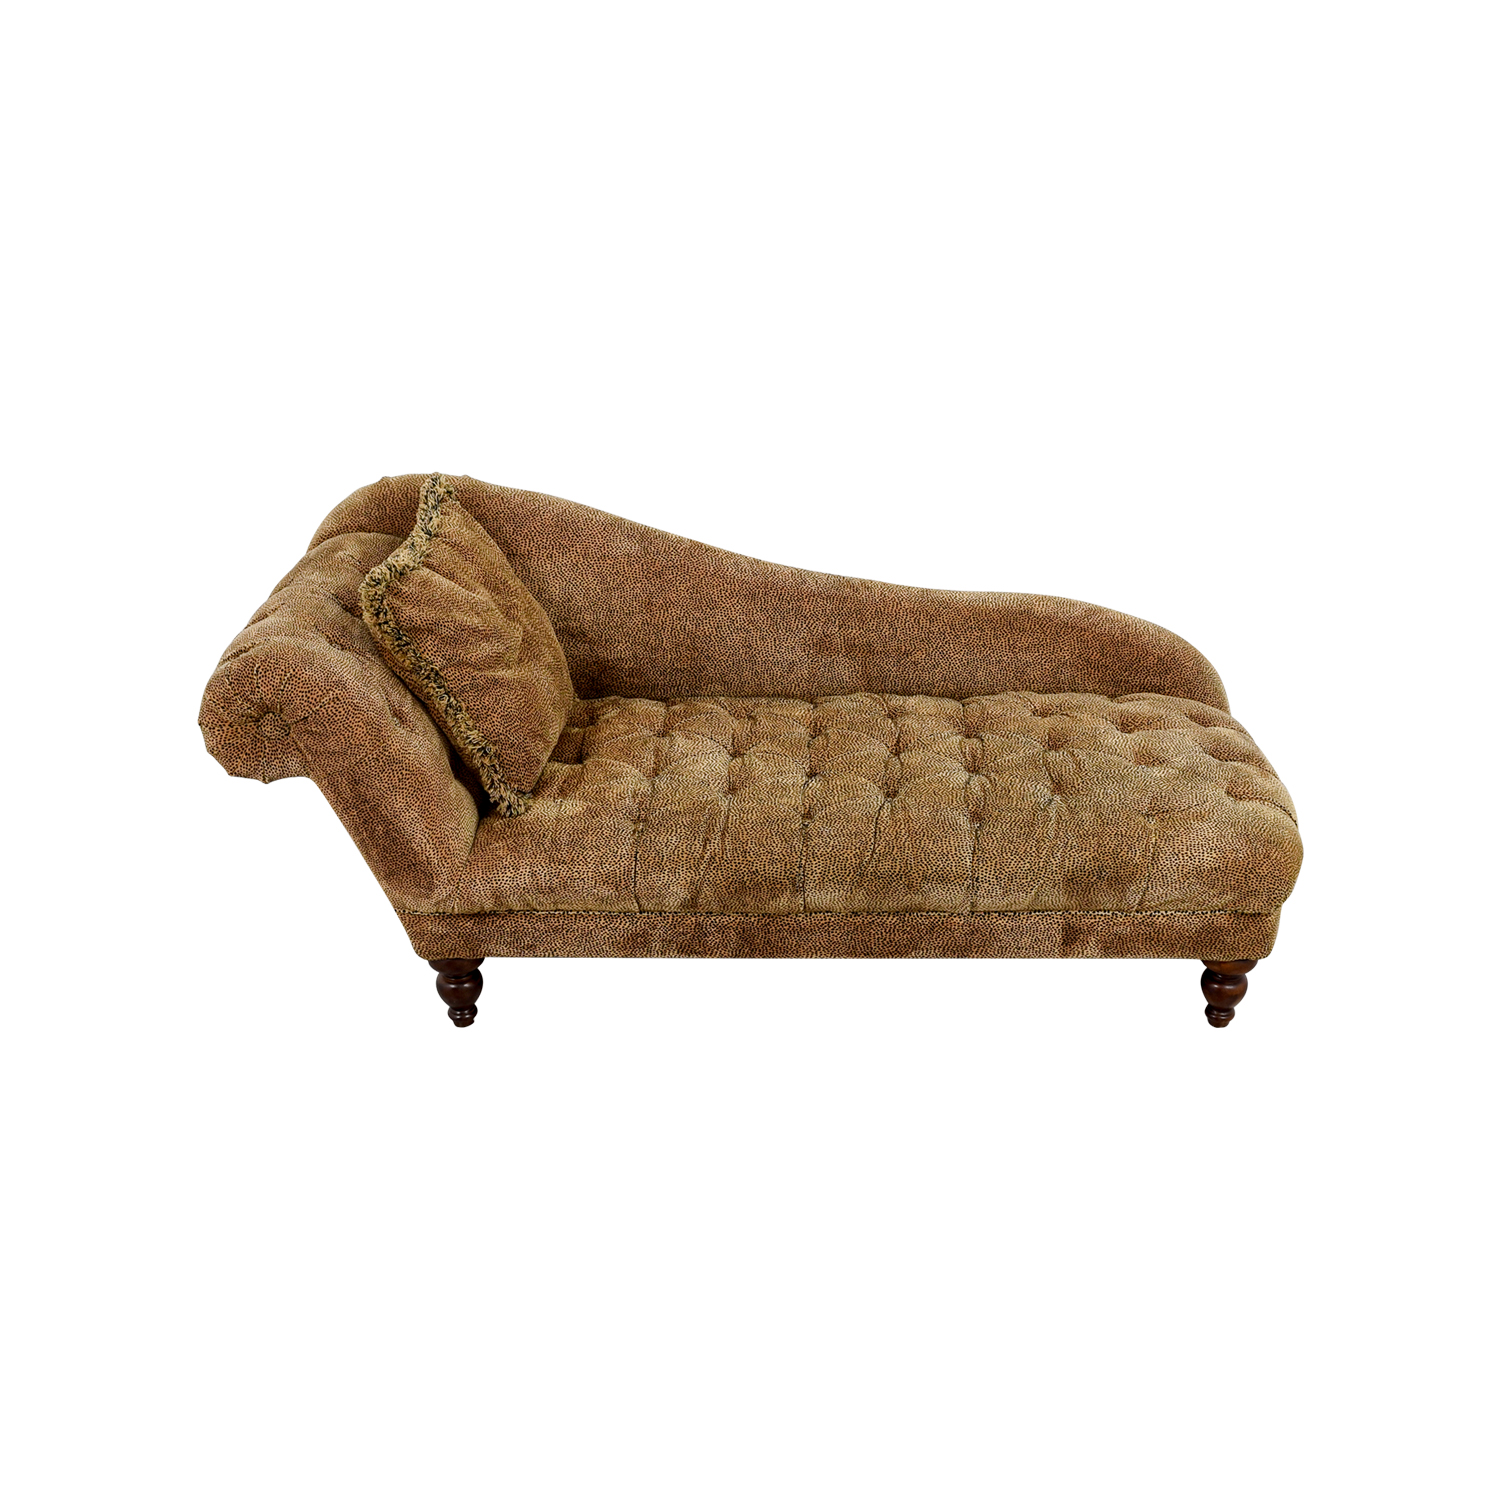 Domain Home Furnishings Domain Home Furnishings Leopard Chaise Lounge  Leopard. 70  OFF   Domain Home Furnishings Domain Home Furnishings Leopard